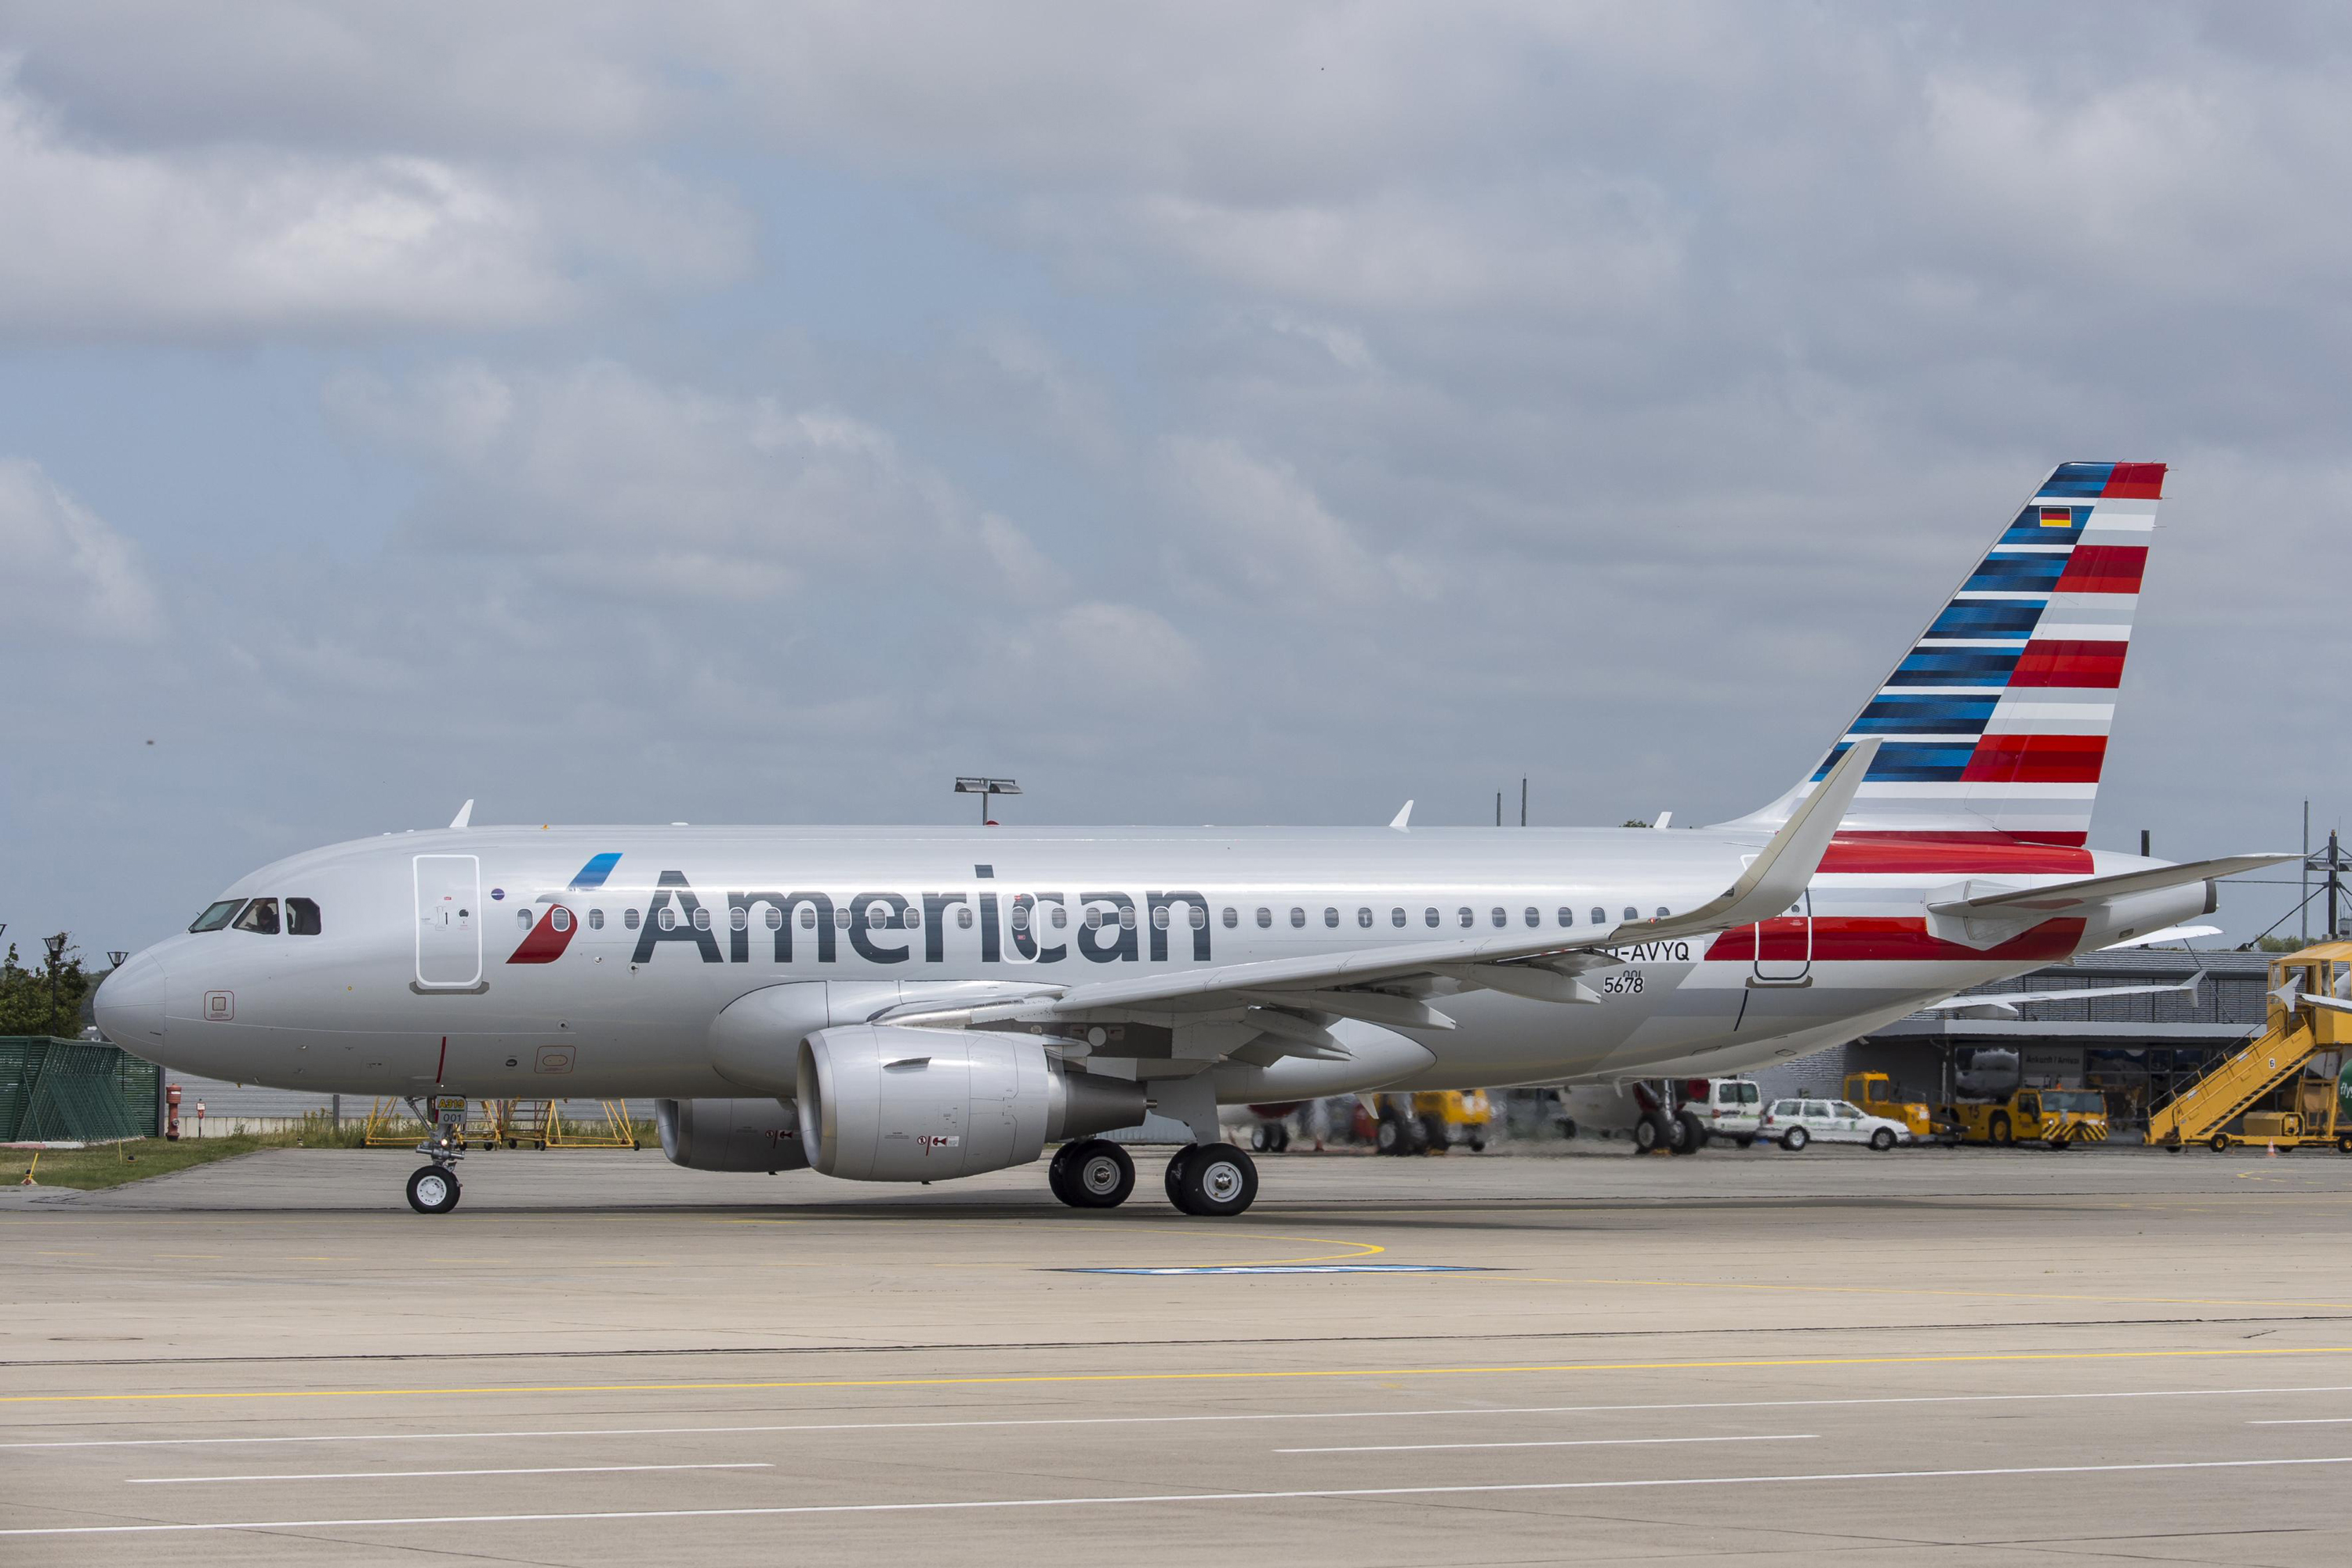 Photo courtesy of American Airlines.